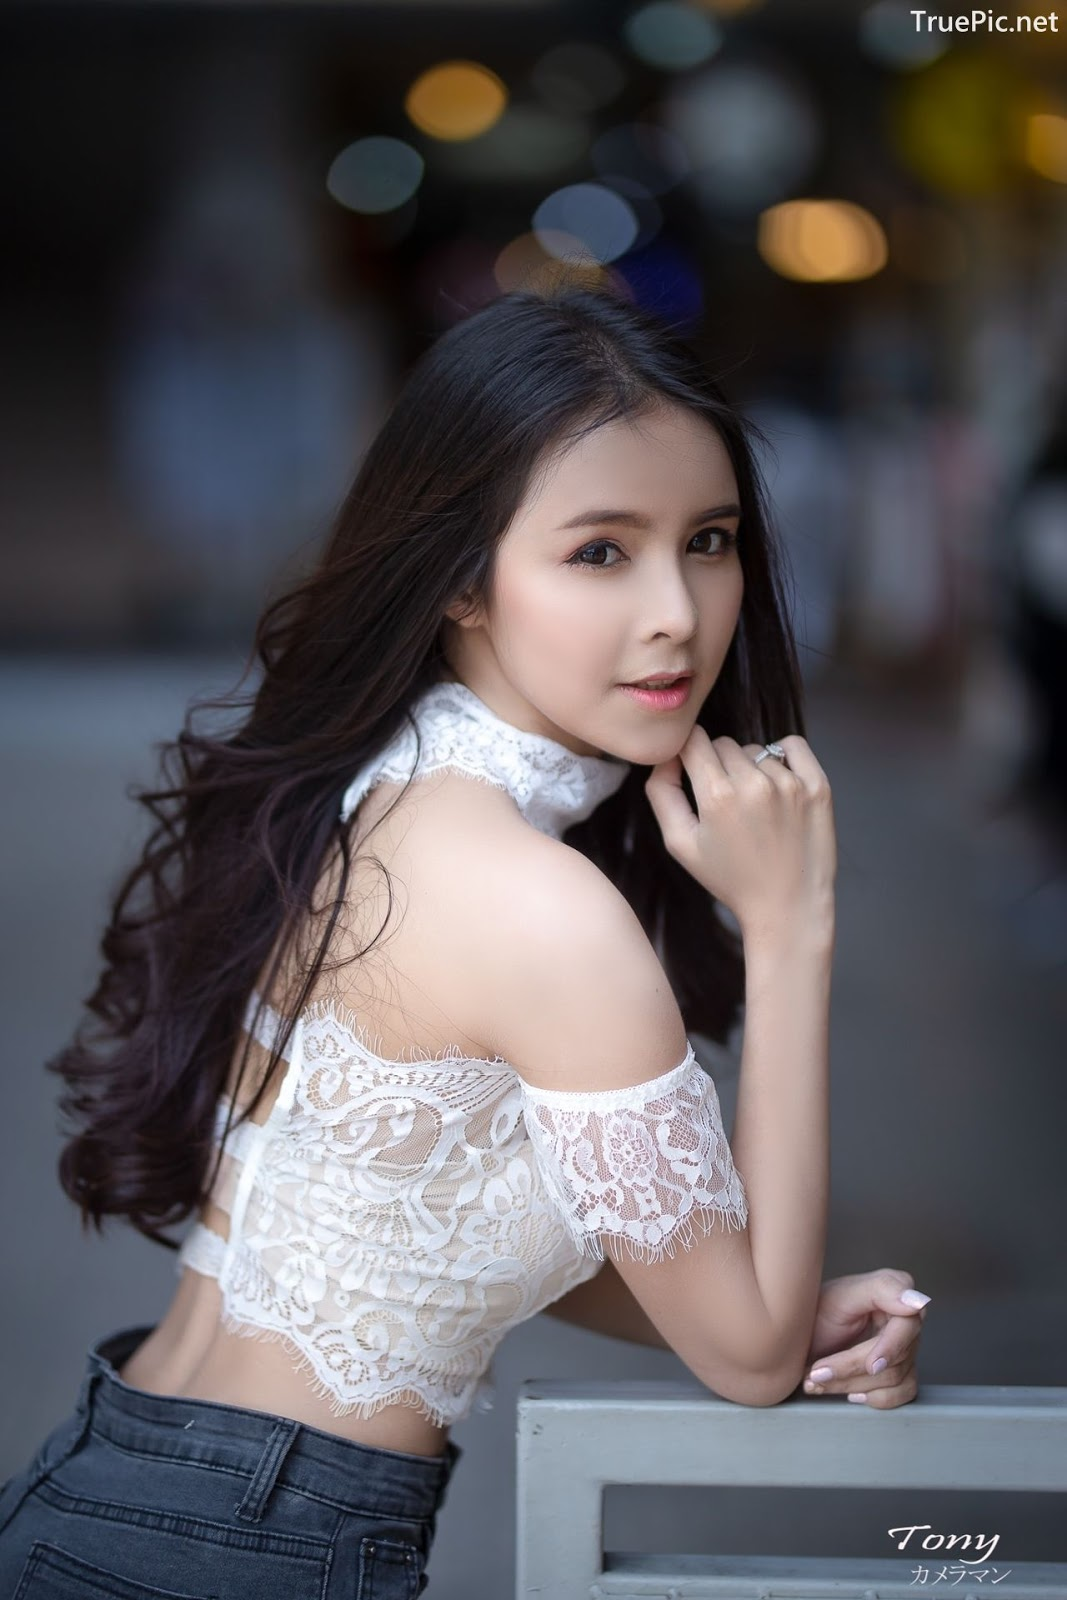 Image-Thailand-Beautiful-Model-Soithip-Palwongpaisal-Transparent-Lace-Crop-Top-And-Jean-TruePic.net- Picture-3